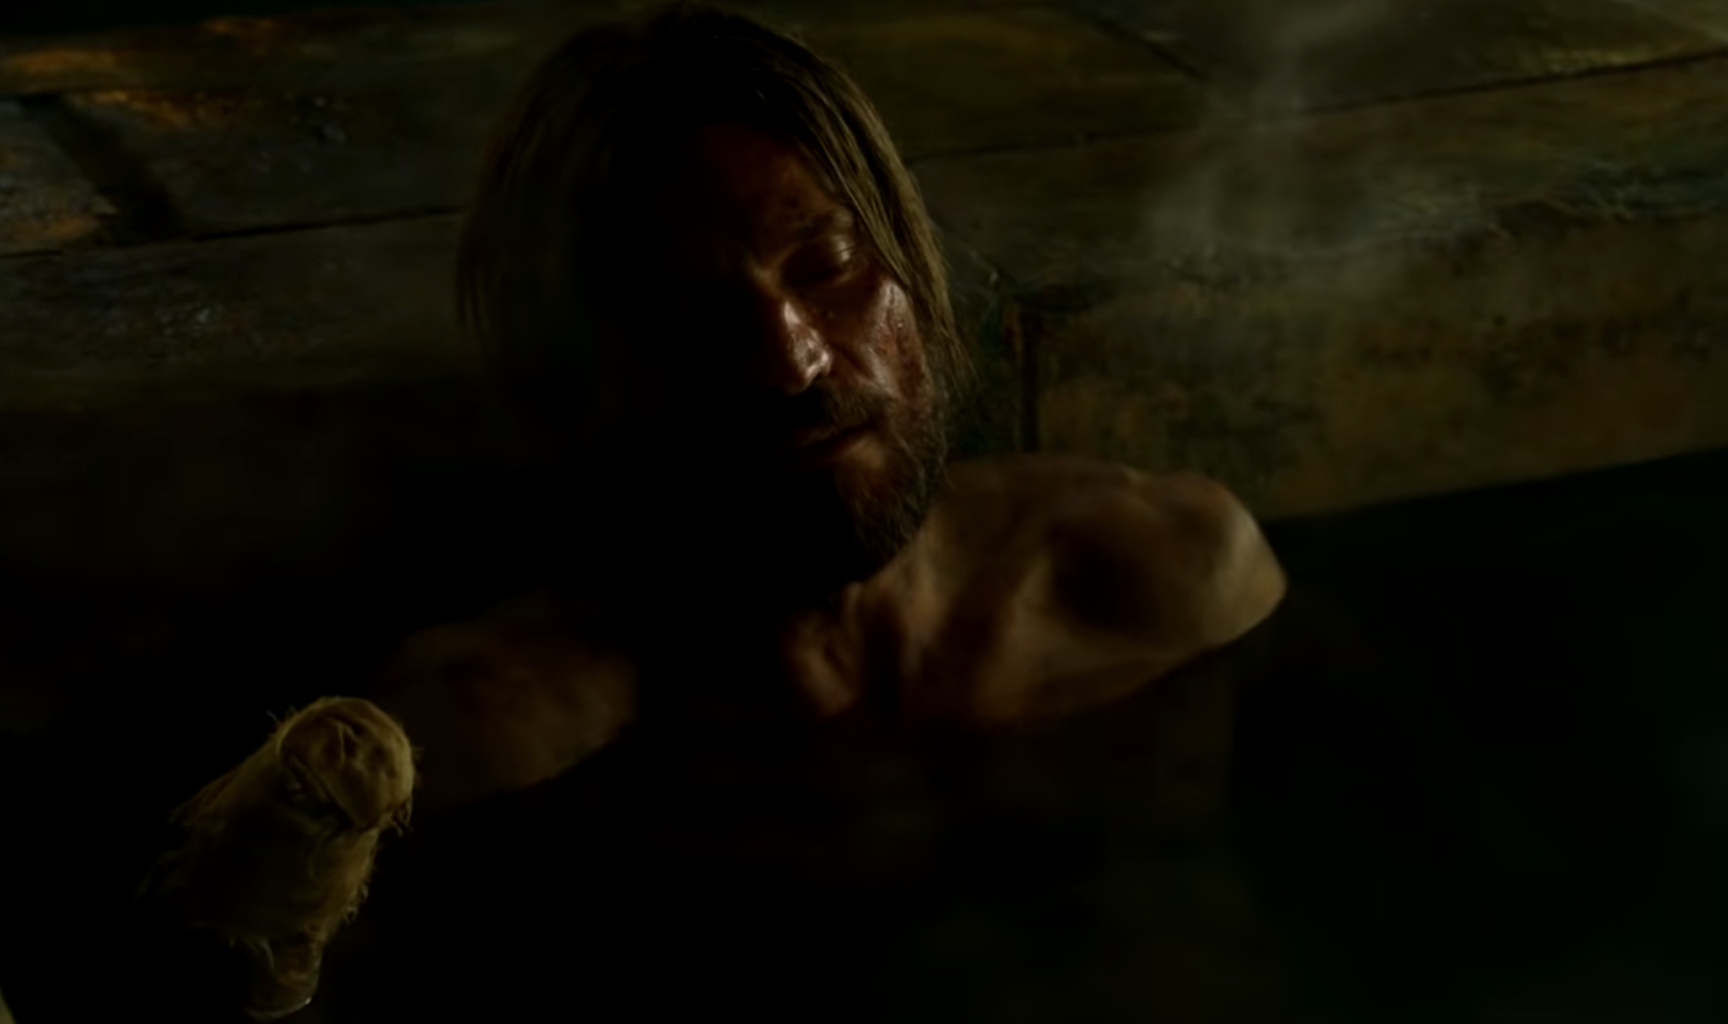 Still from Game of Thrones: a dirty and bloody Jaime Lannister sits in a bath, looking upset